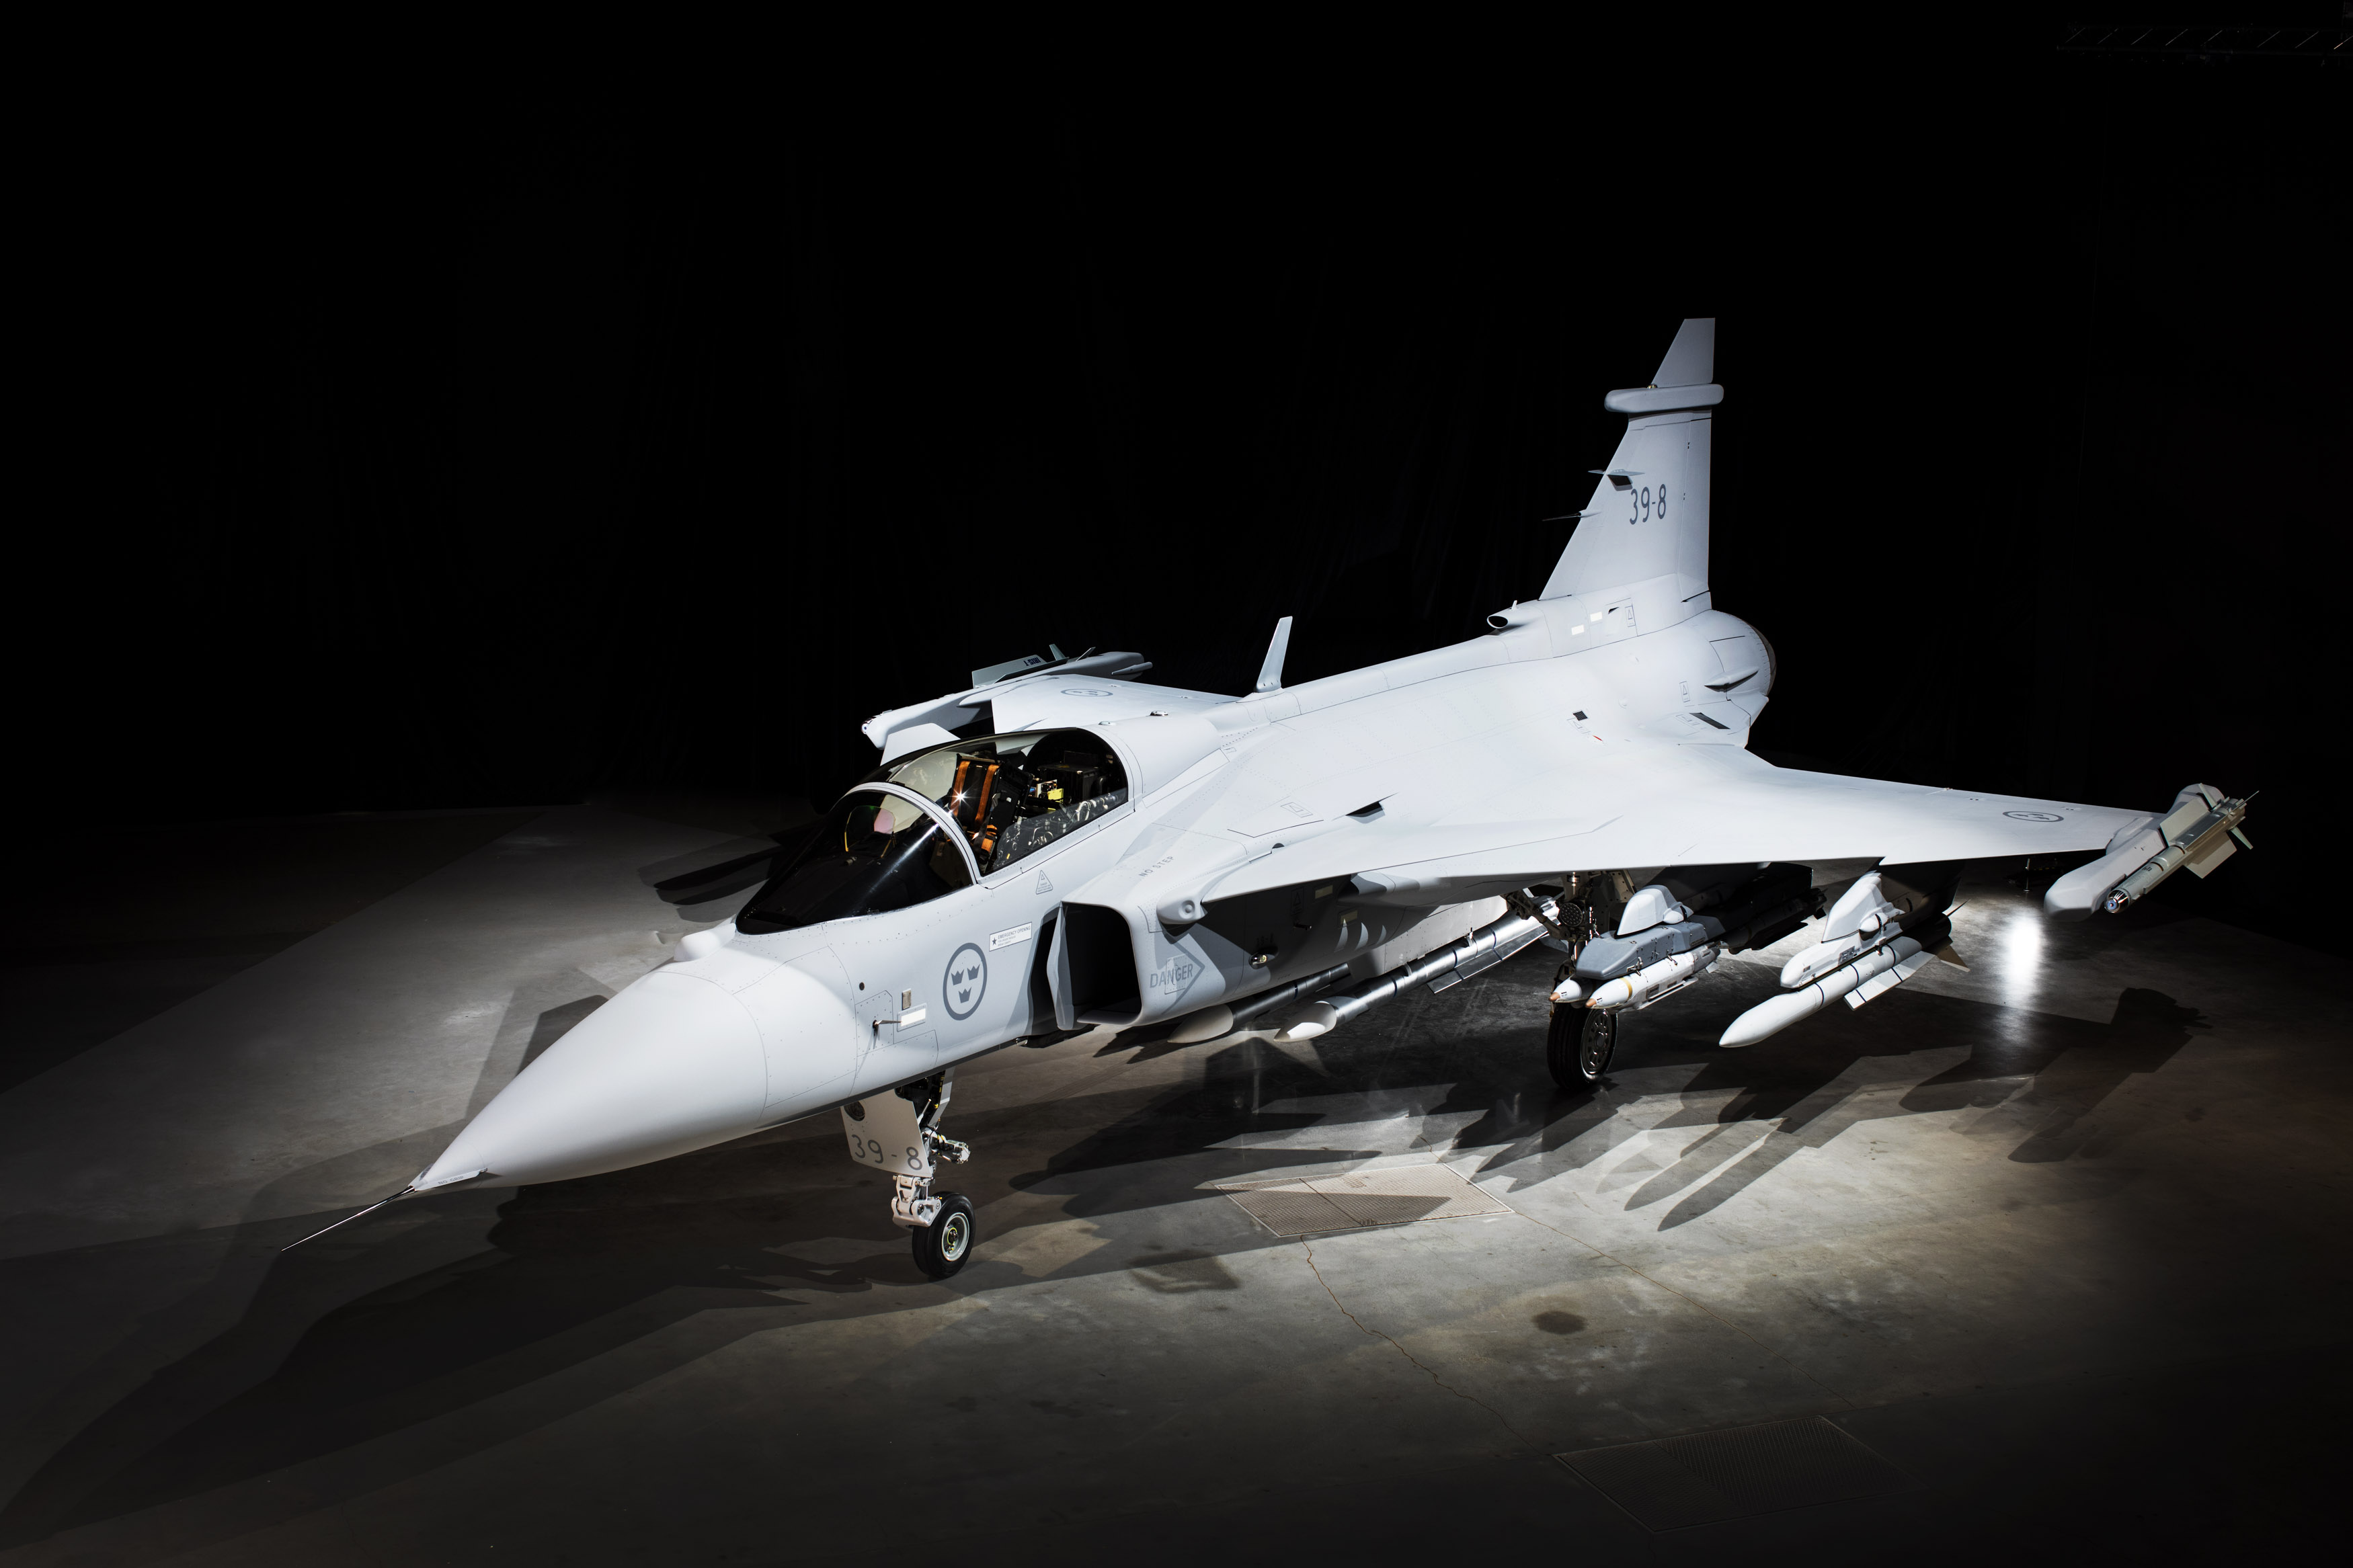 Saab had originally projected potential unit sales of between 150 and 200 for the Gripen-E over the next 15 years. This forecast is now regarded as conservative, with the company hoping for unit sales of between 300 to 500 units over 15 to 20 years. (Saab)